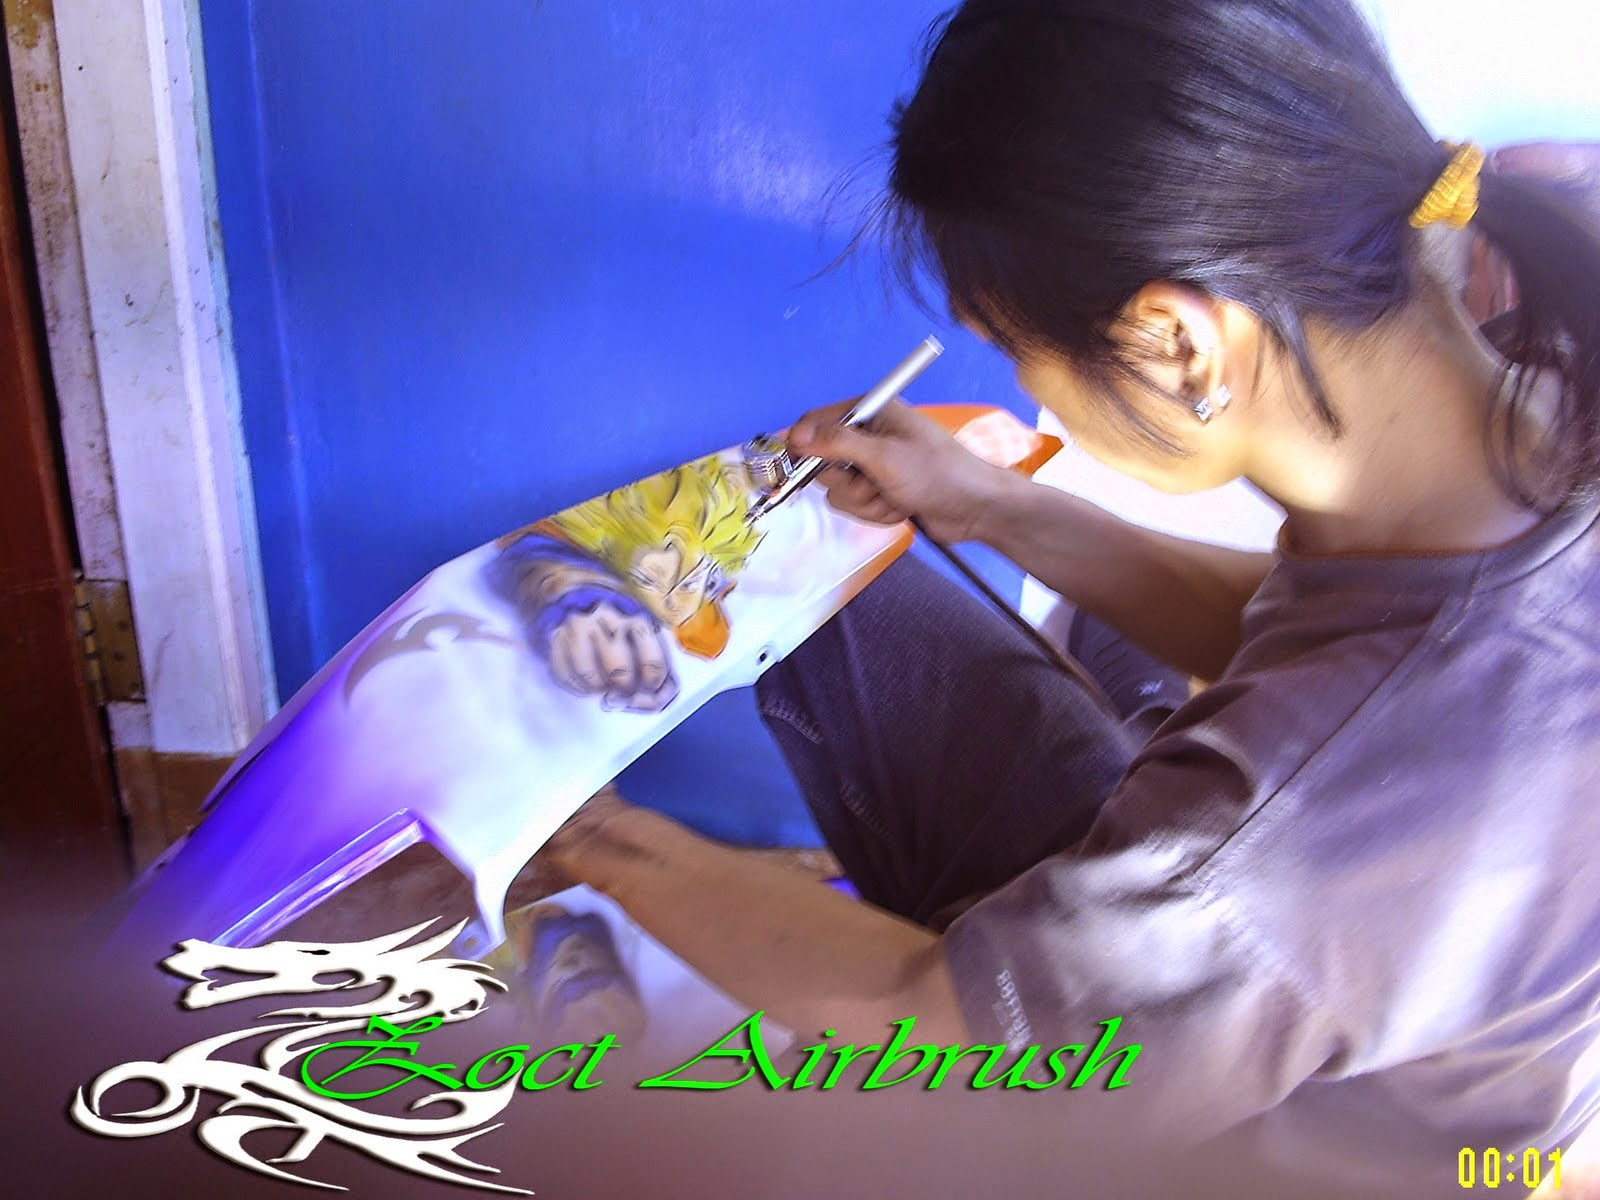 Modifikasi Jupiter Mx Full Airbrush